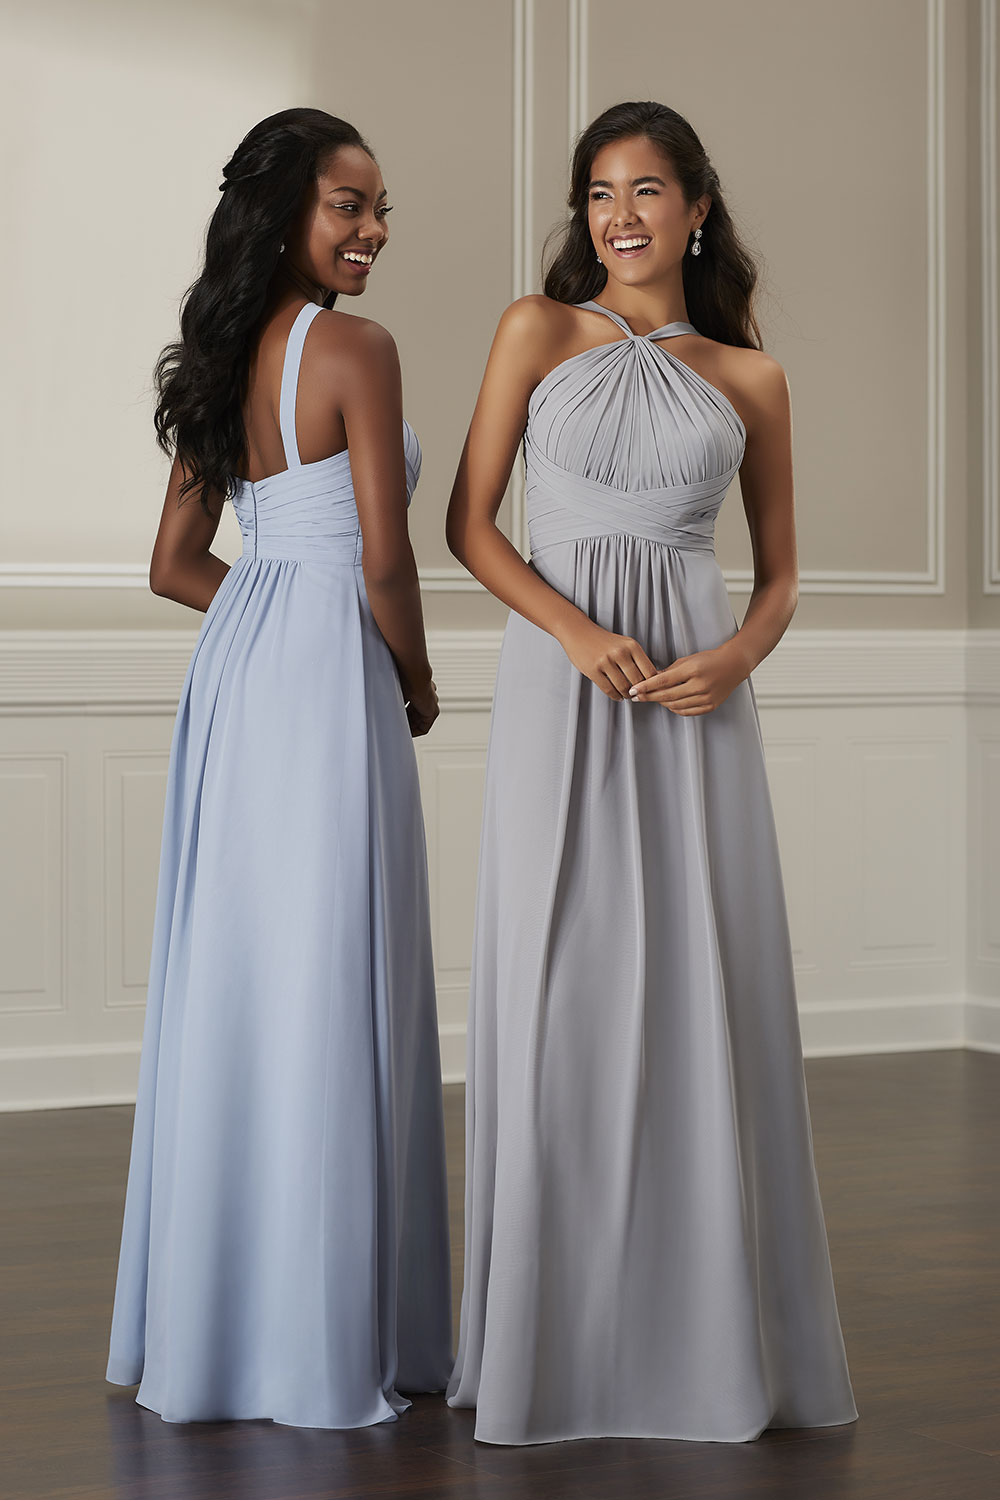 bridesmaid-dresses-jacquelin-bridals-canada-26836